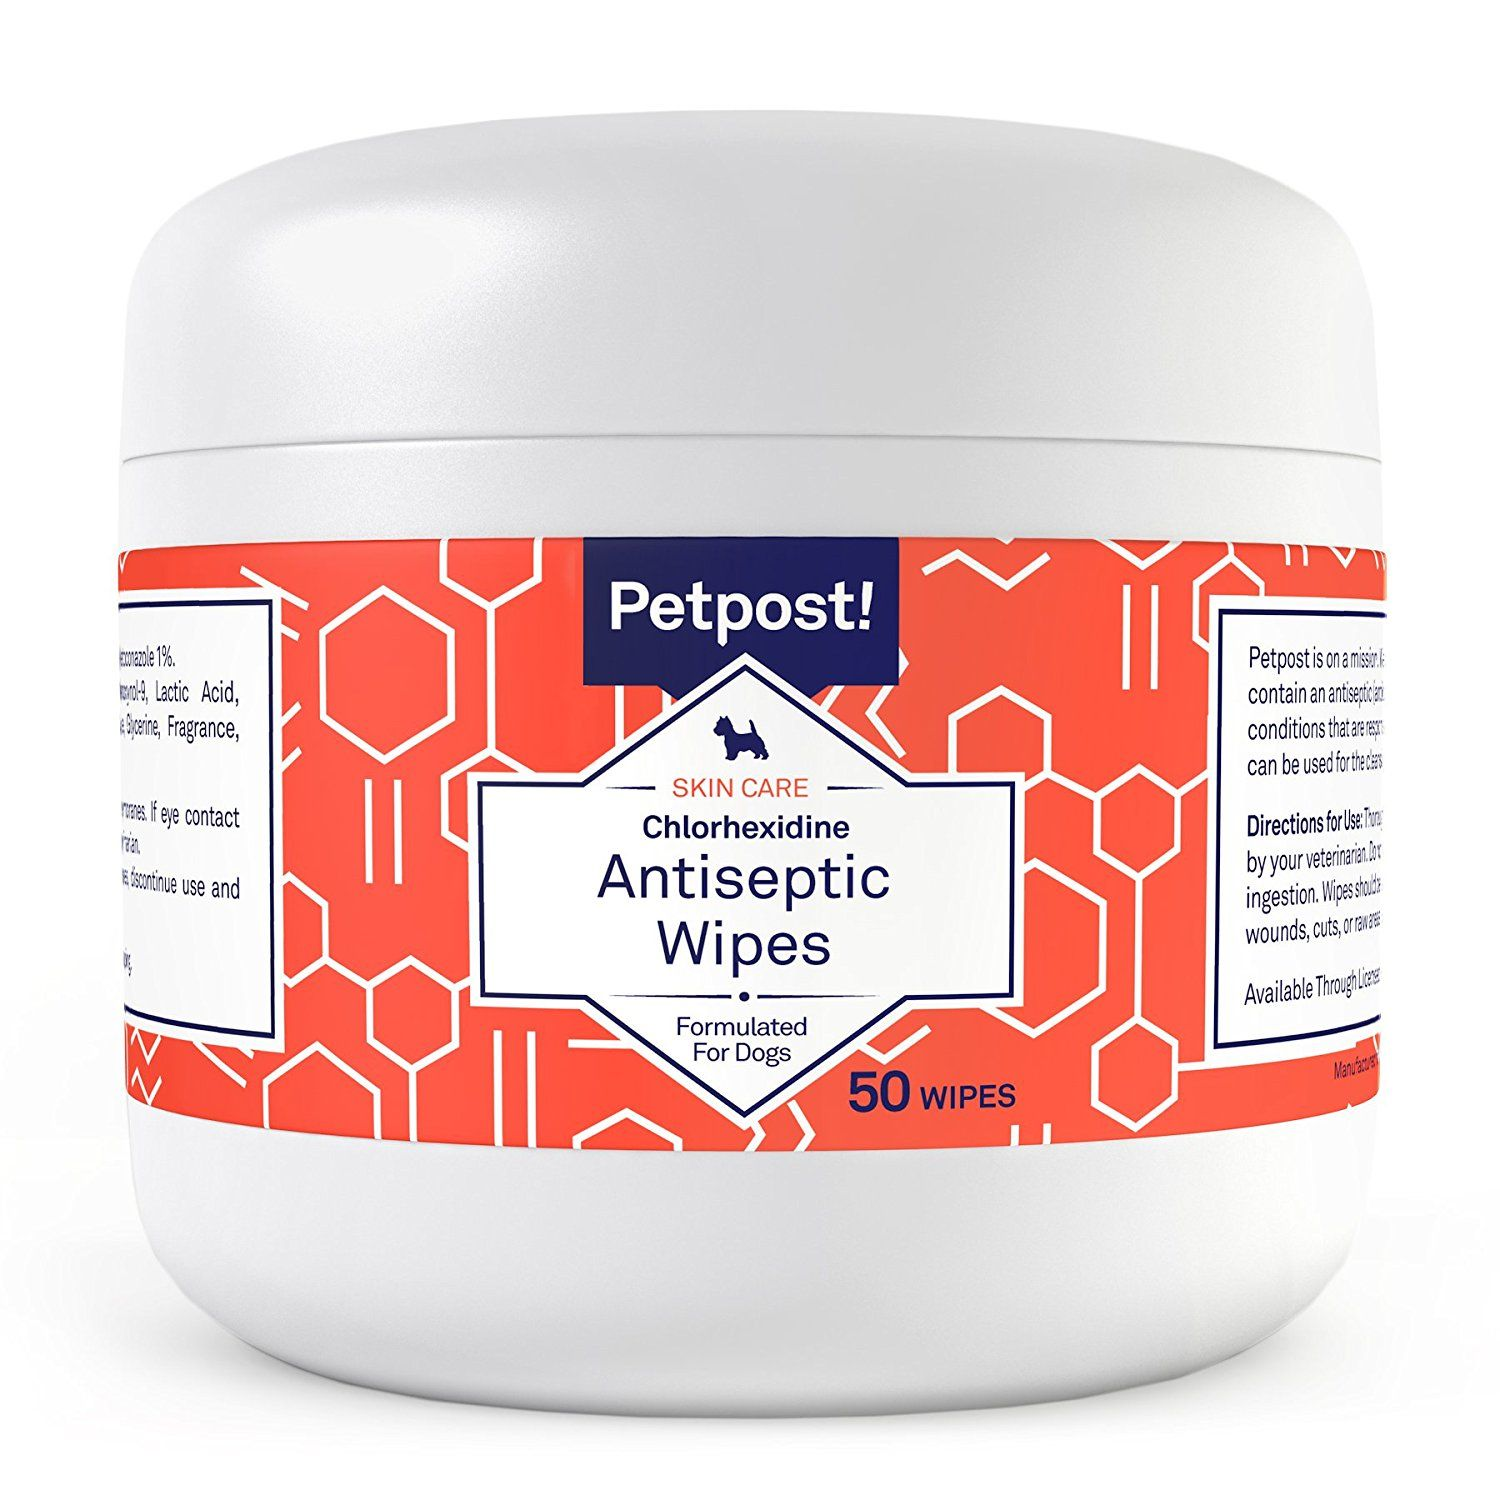 Petpost Chlorhexidine Wipes 50 Antiseptic Wipes for